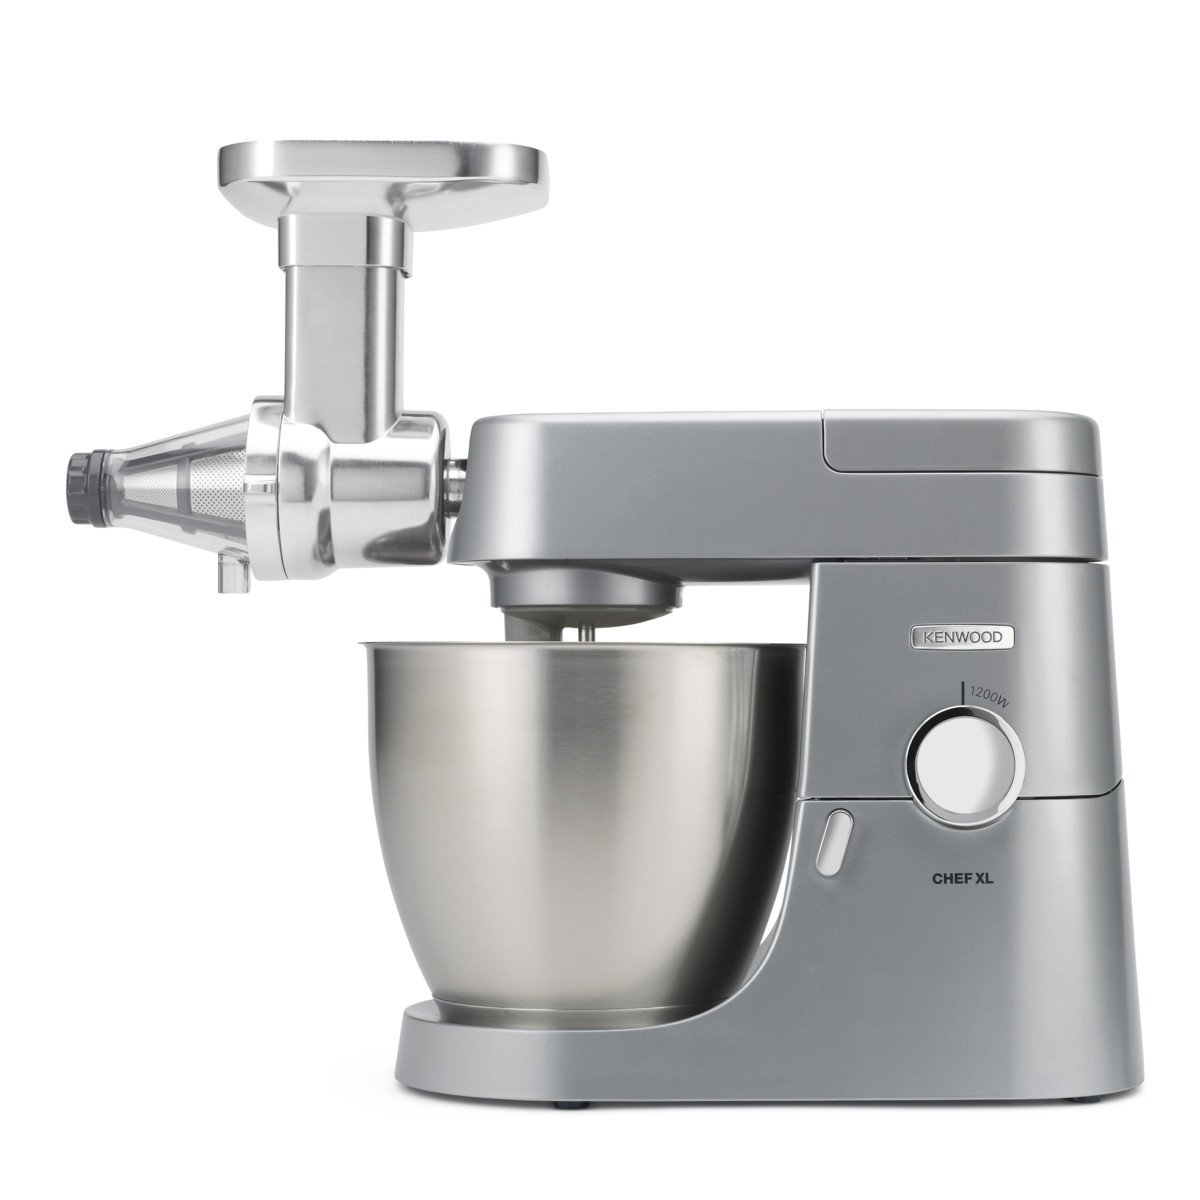 Kenwood AT644 SM900 Accessorio Spremifrutta per Impastatrice ...